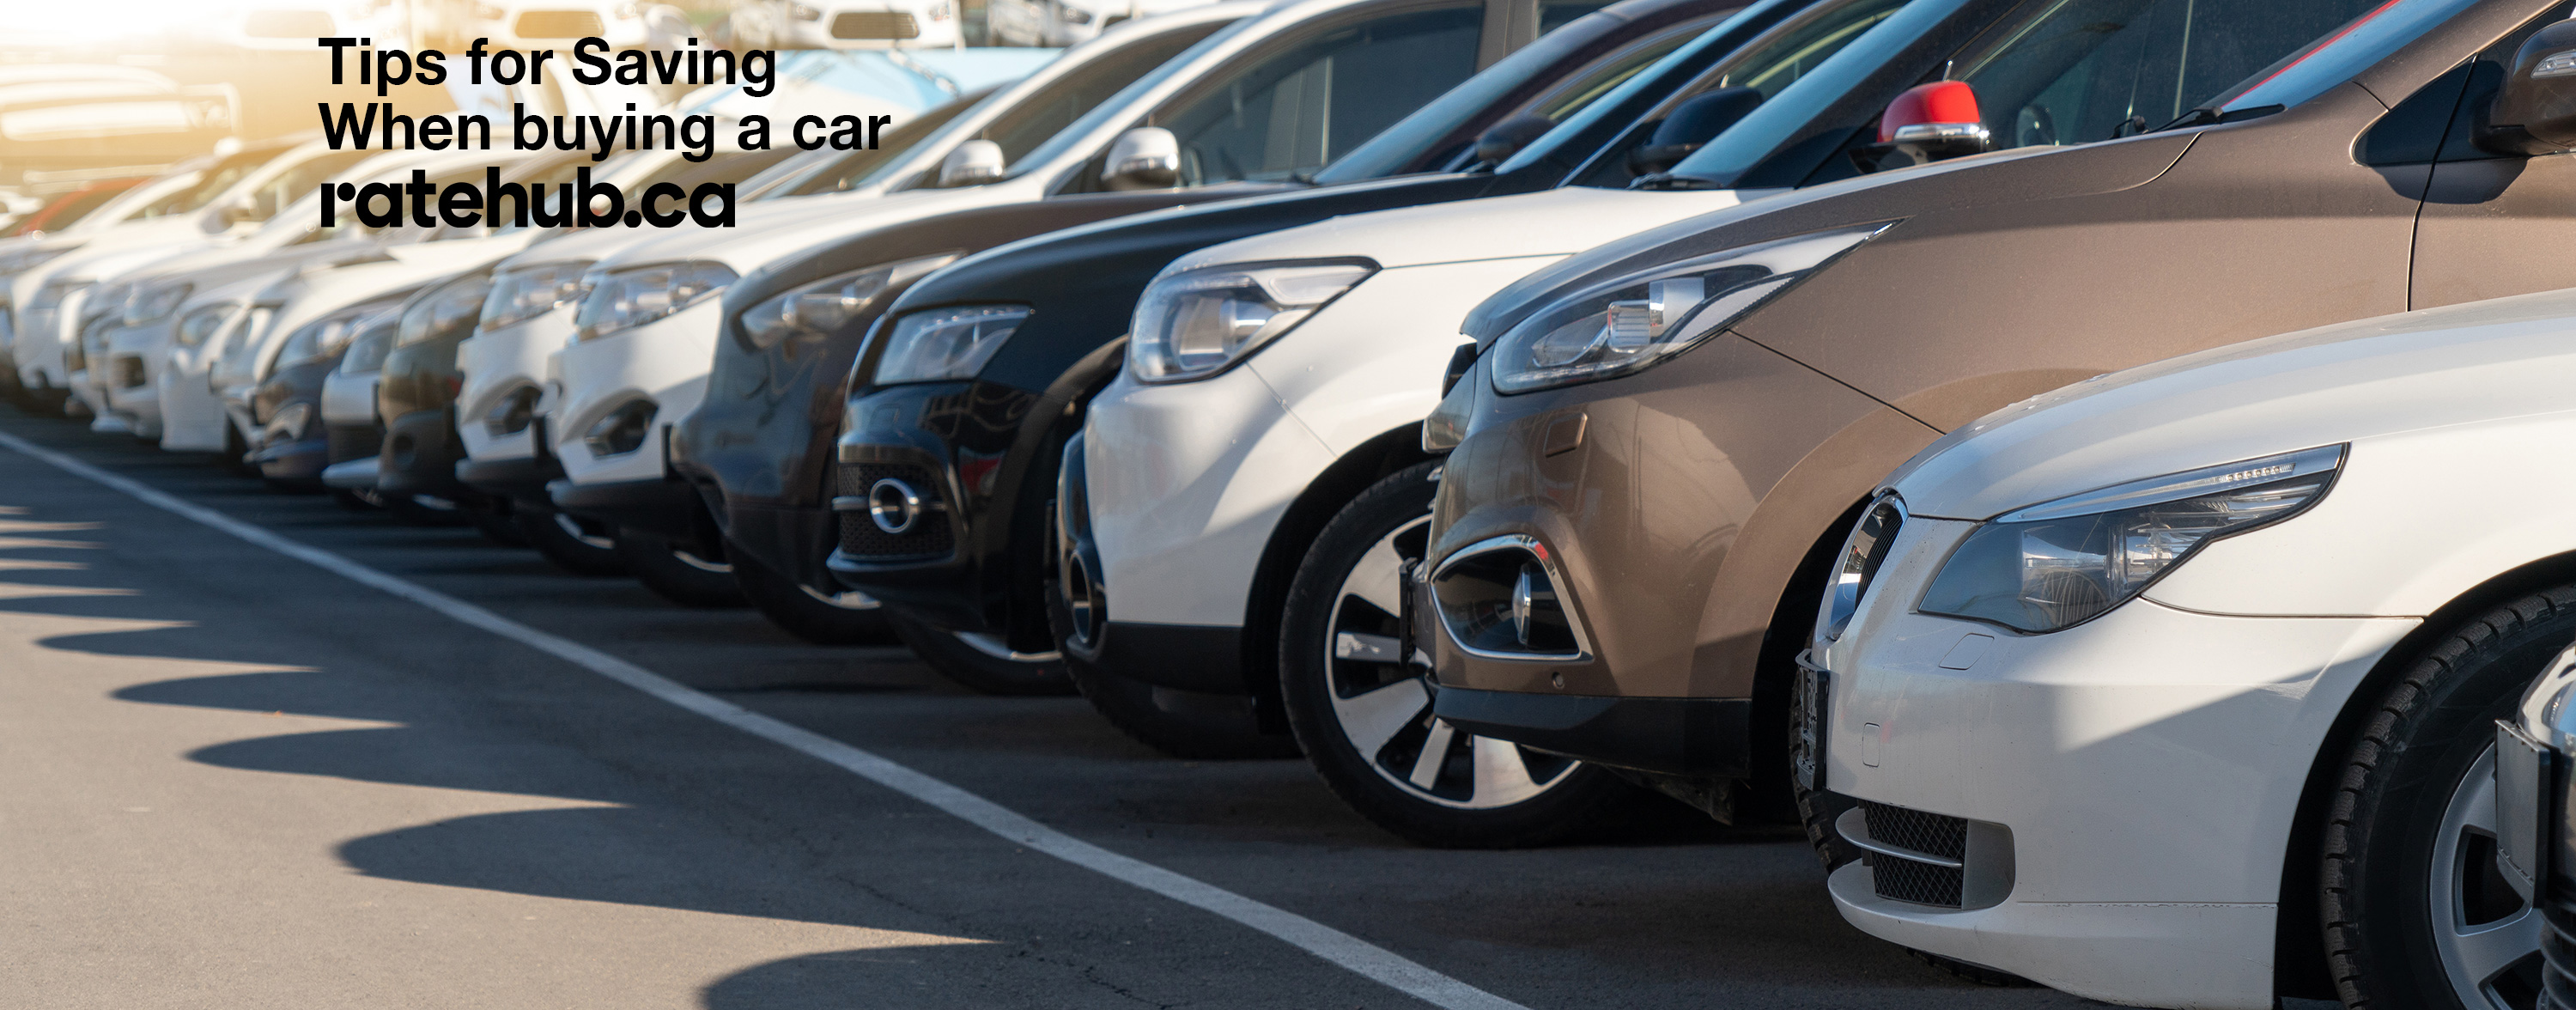 Tips for saving when buying a car